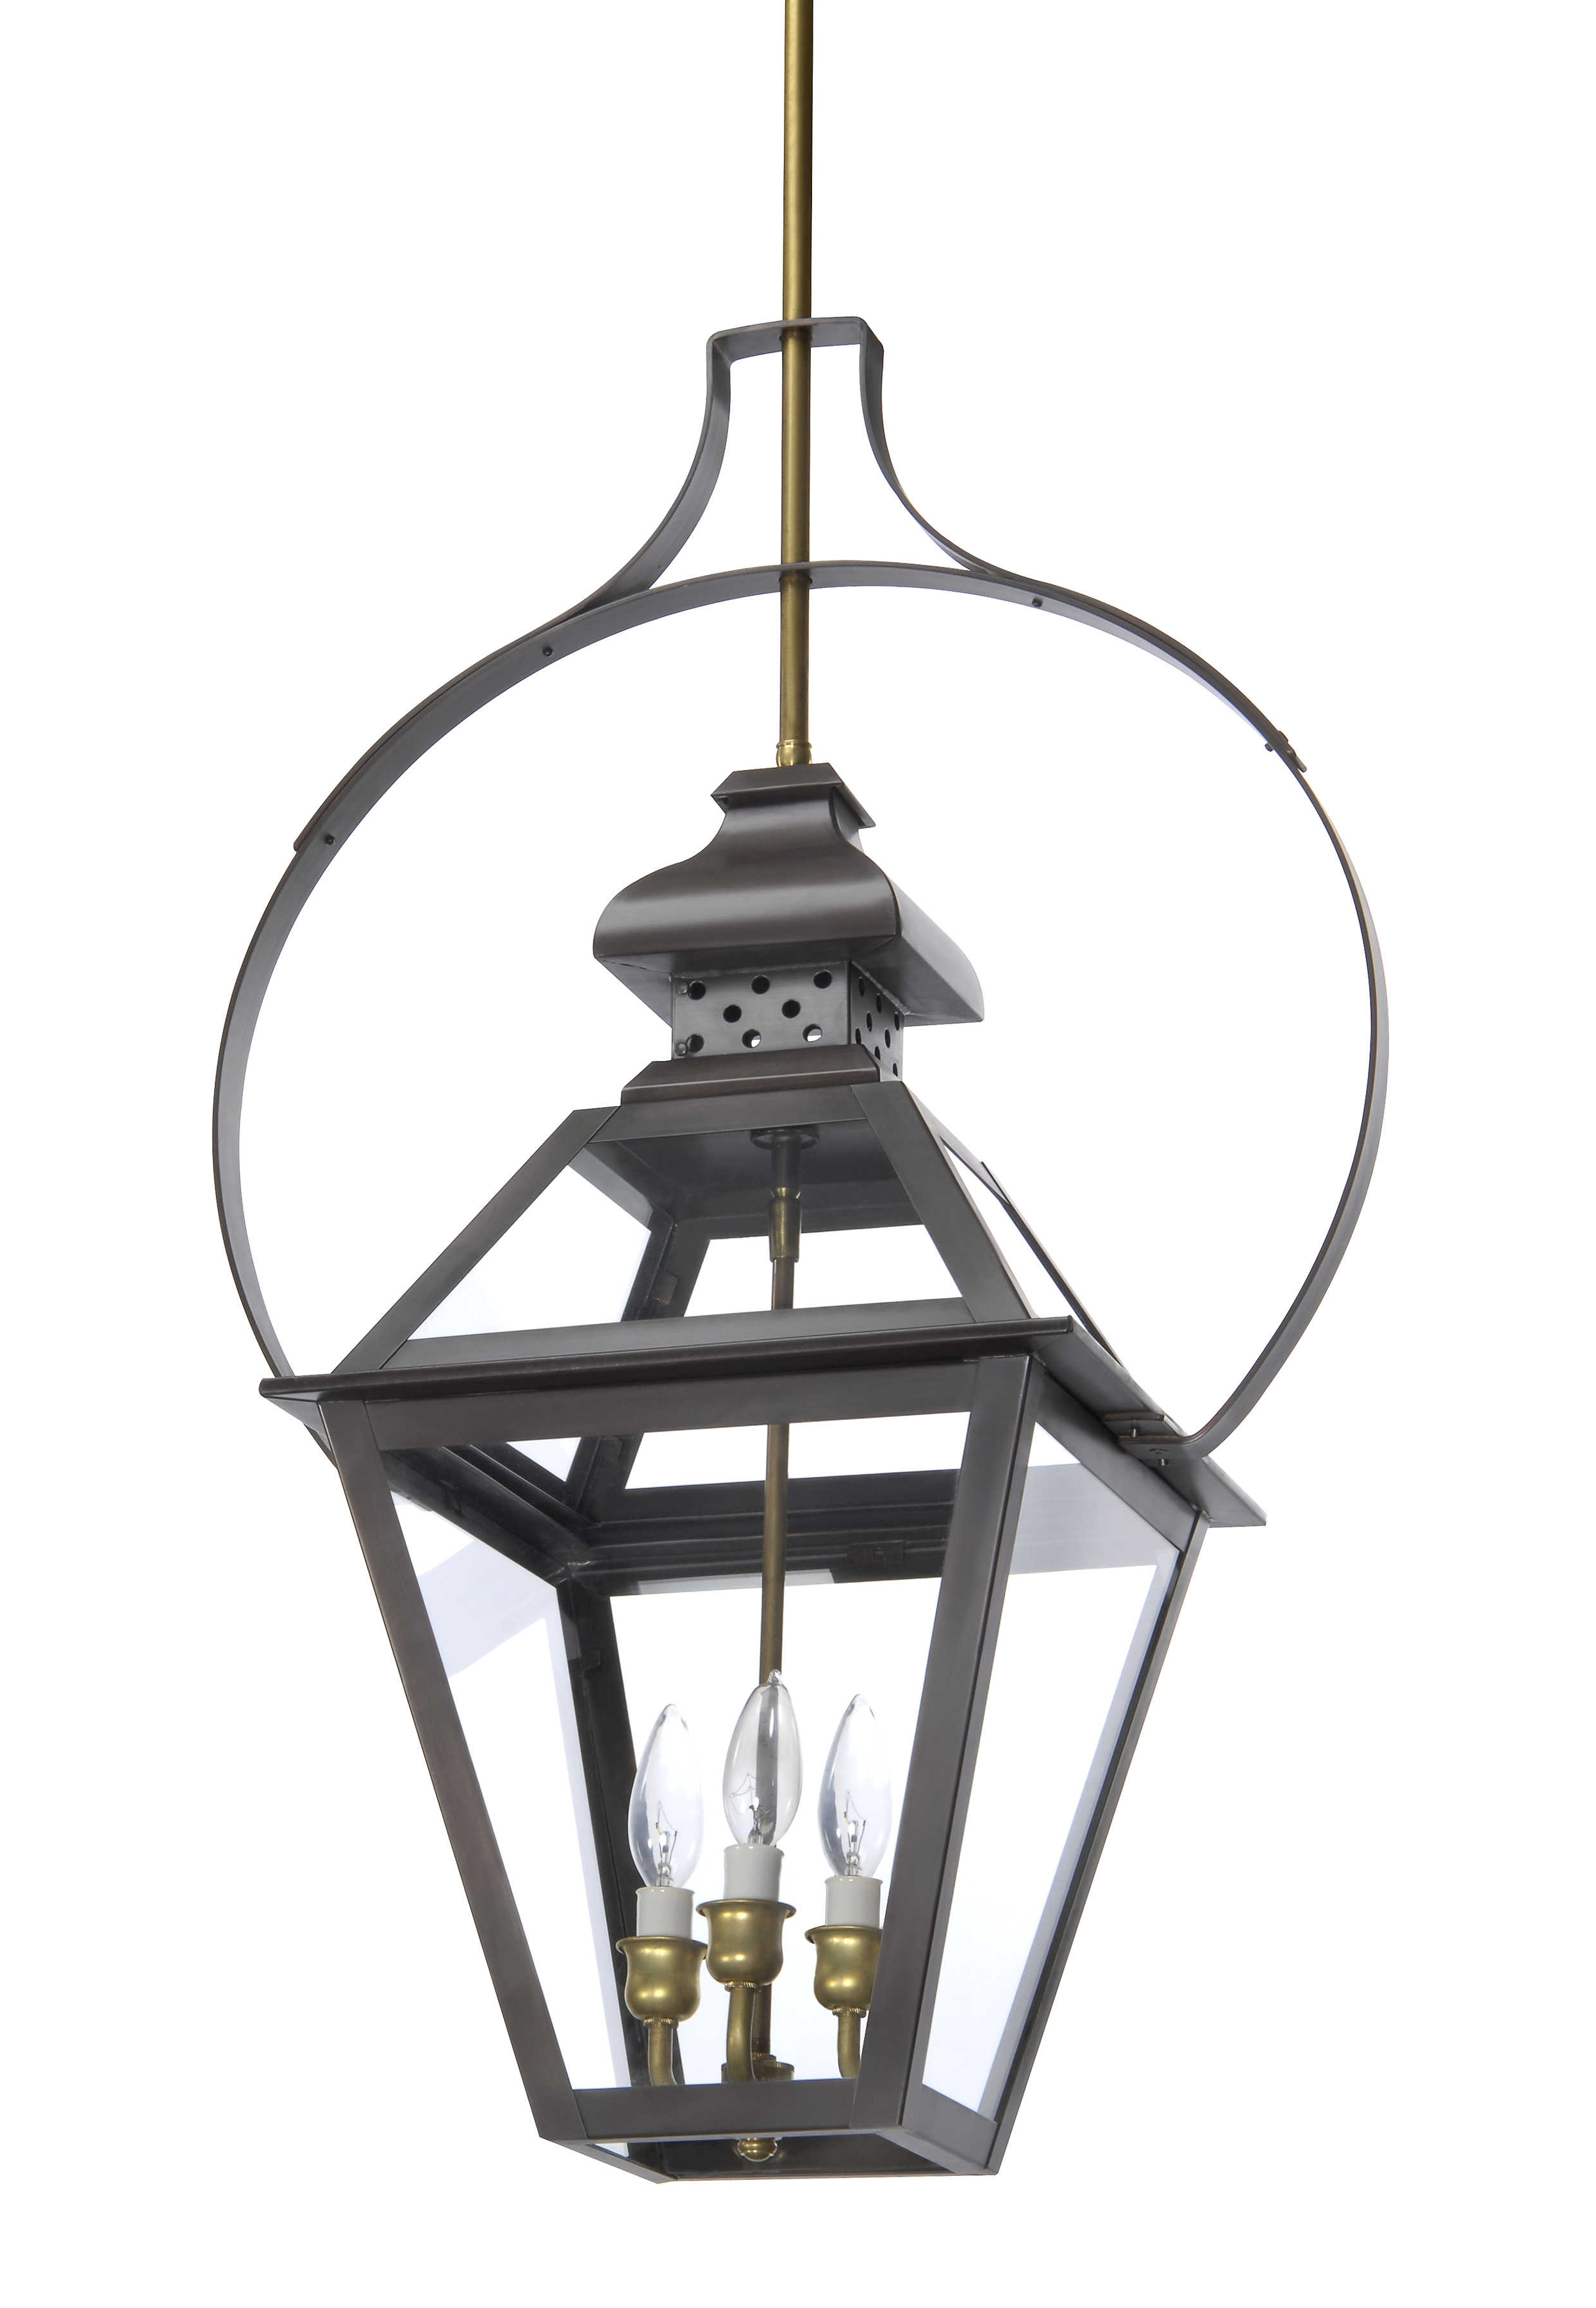 T 33 – Hanging Light, Copper Lantern, Gas And Electric Lighting For Most Recent Electric Outdoor Hanging Lanterns (View 9 of 20)